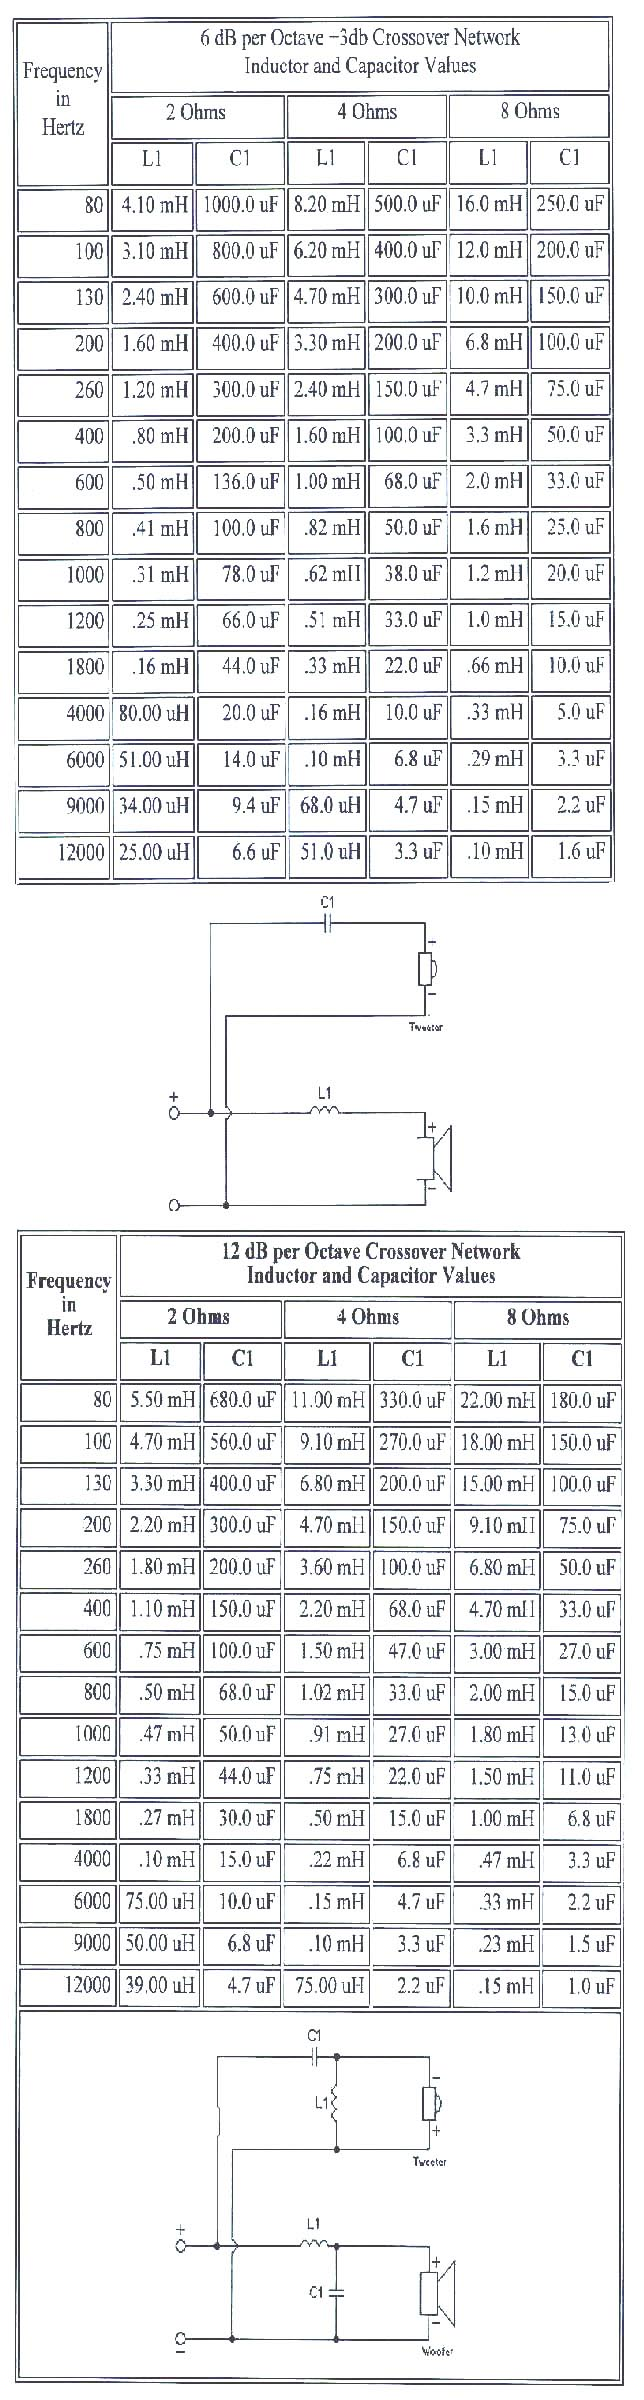 crossover cap/inductor values